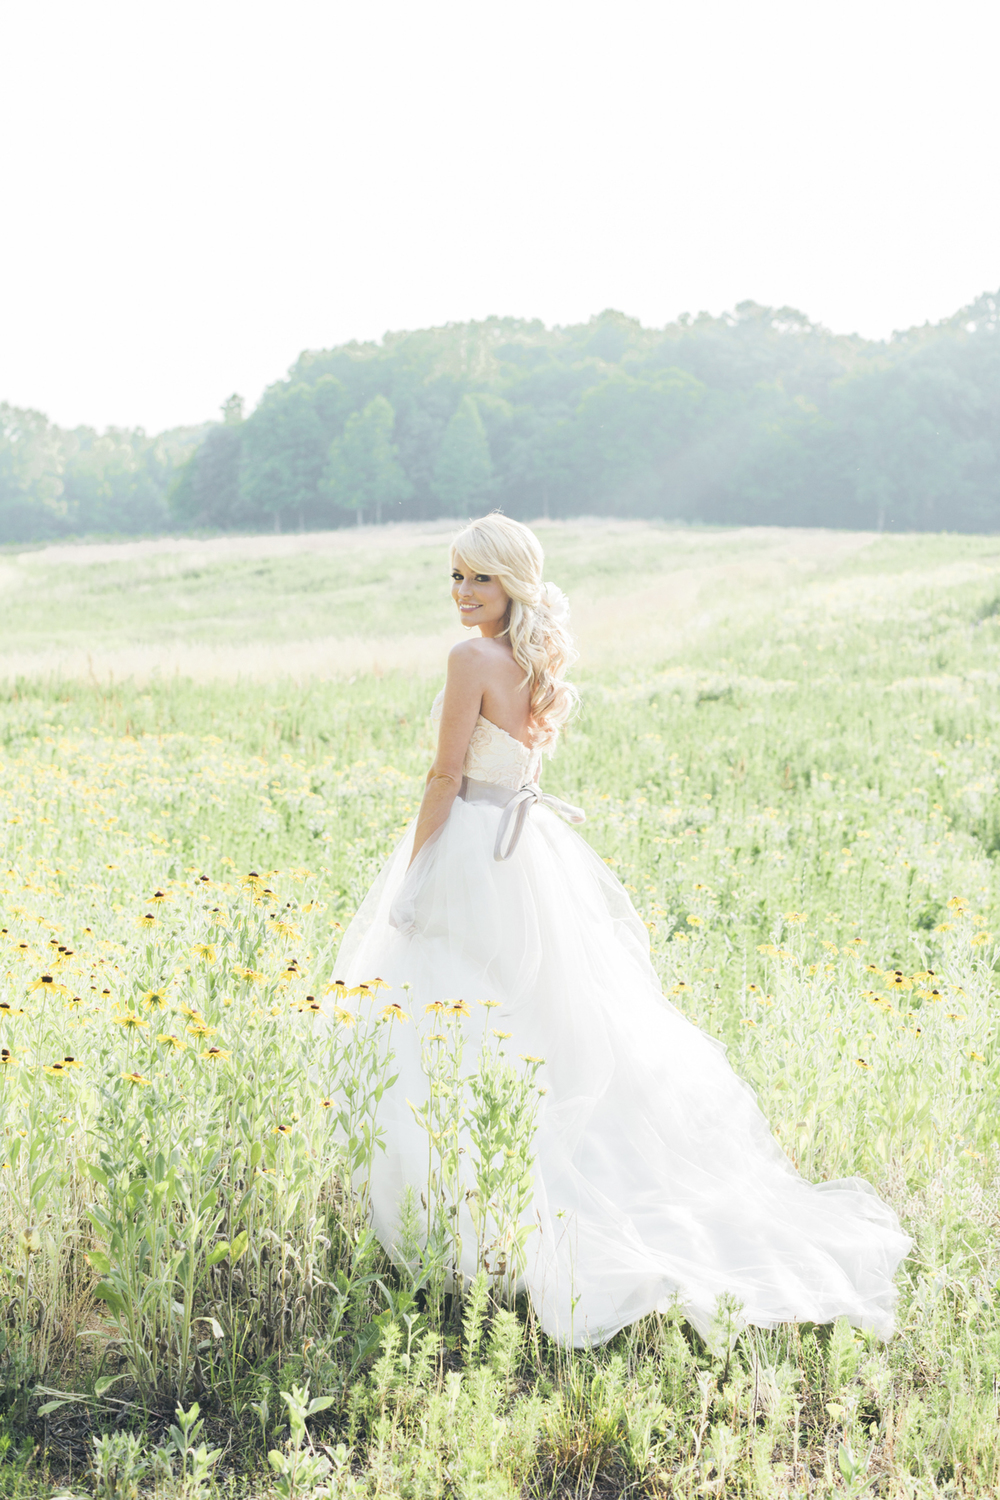 south_carolina_farm_wedding_rustic_chic_surprise_secret_luxe_wedding_bachelorette_emily_maynard_real_weddings-38.jpg